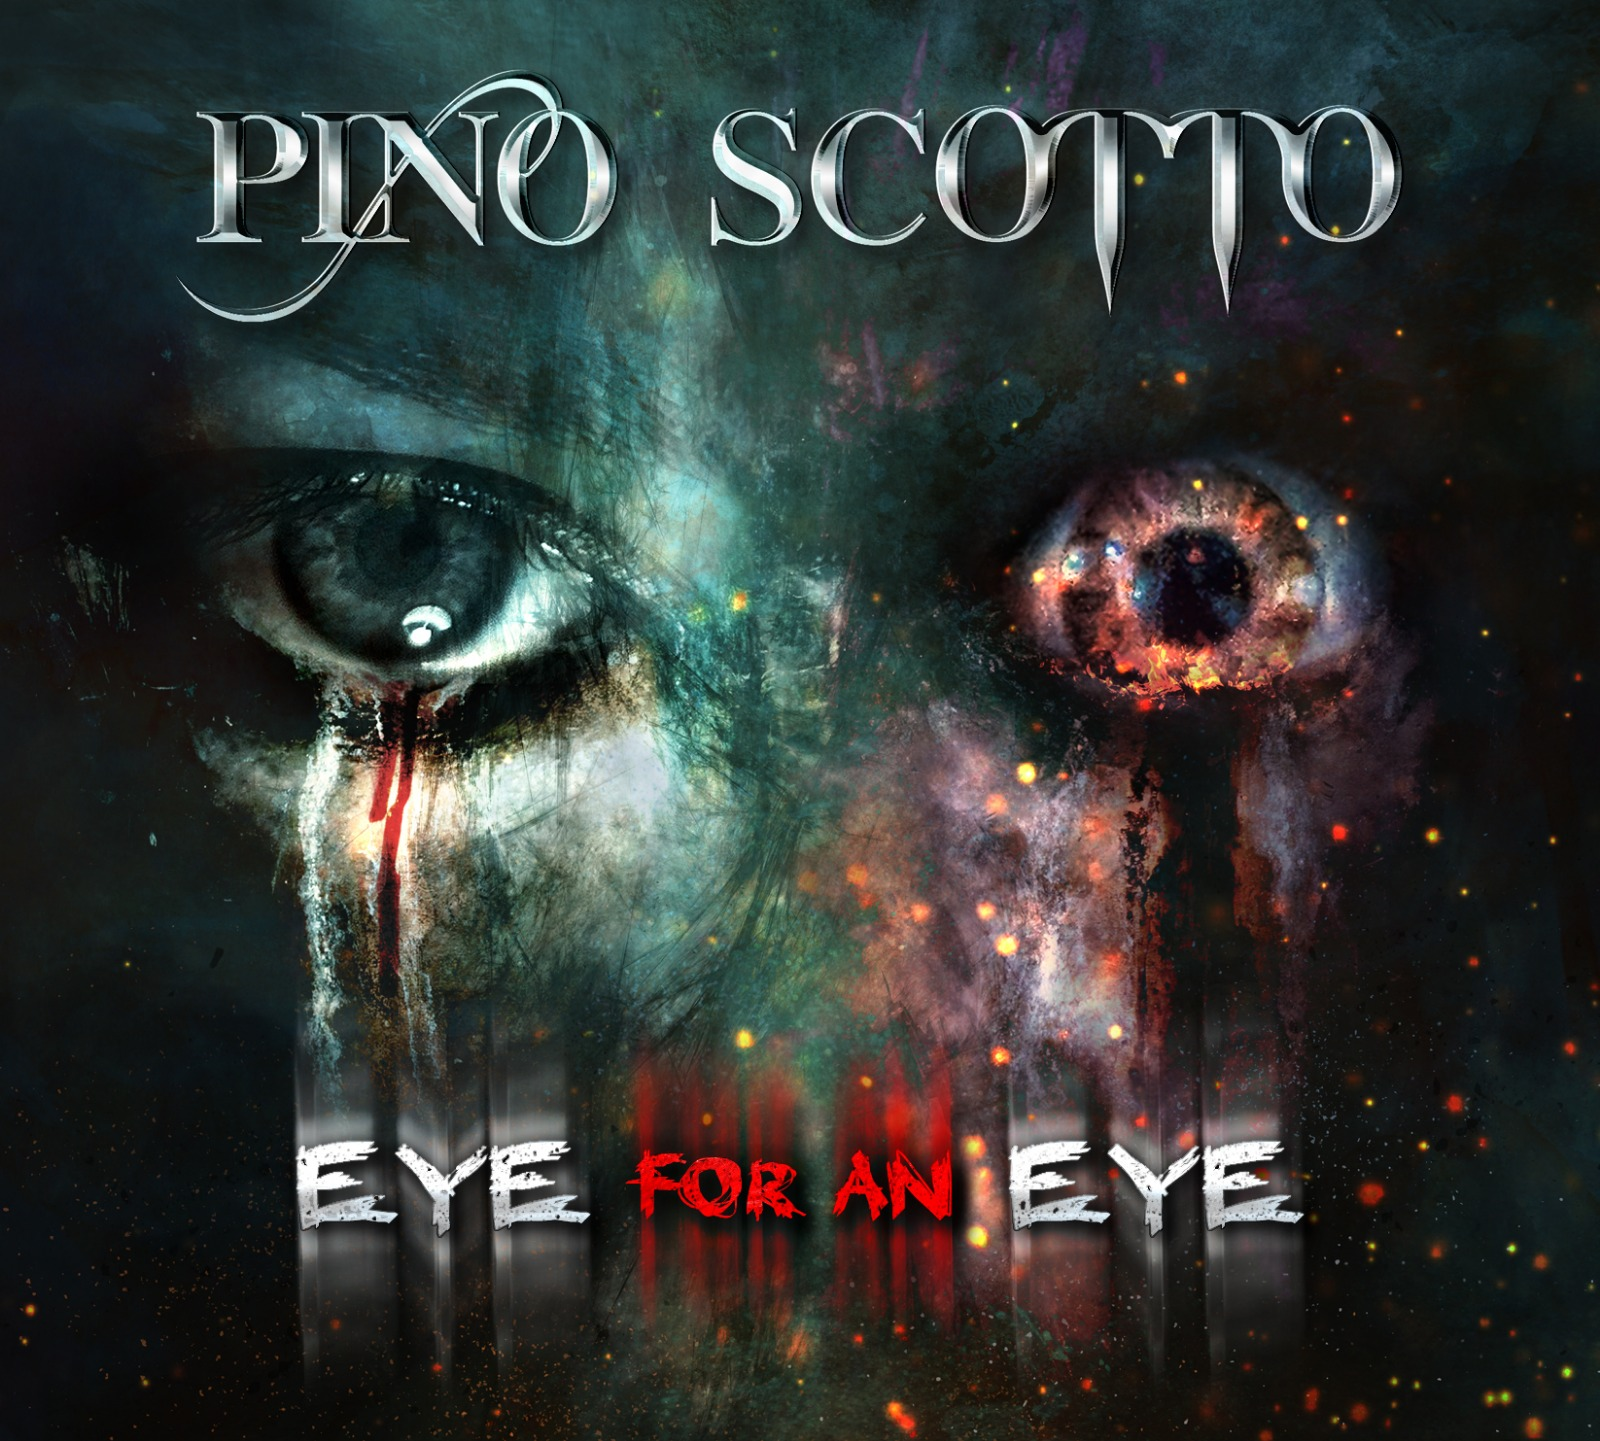 Pino Scotto - Eye For An Eye 2018 front album